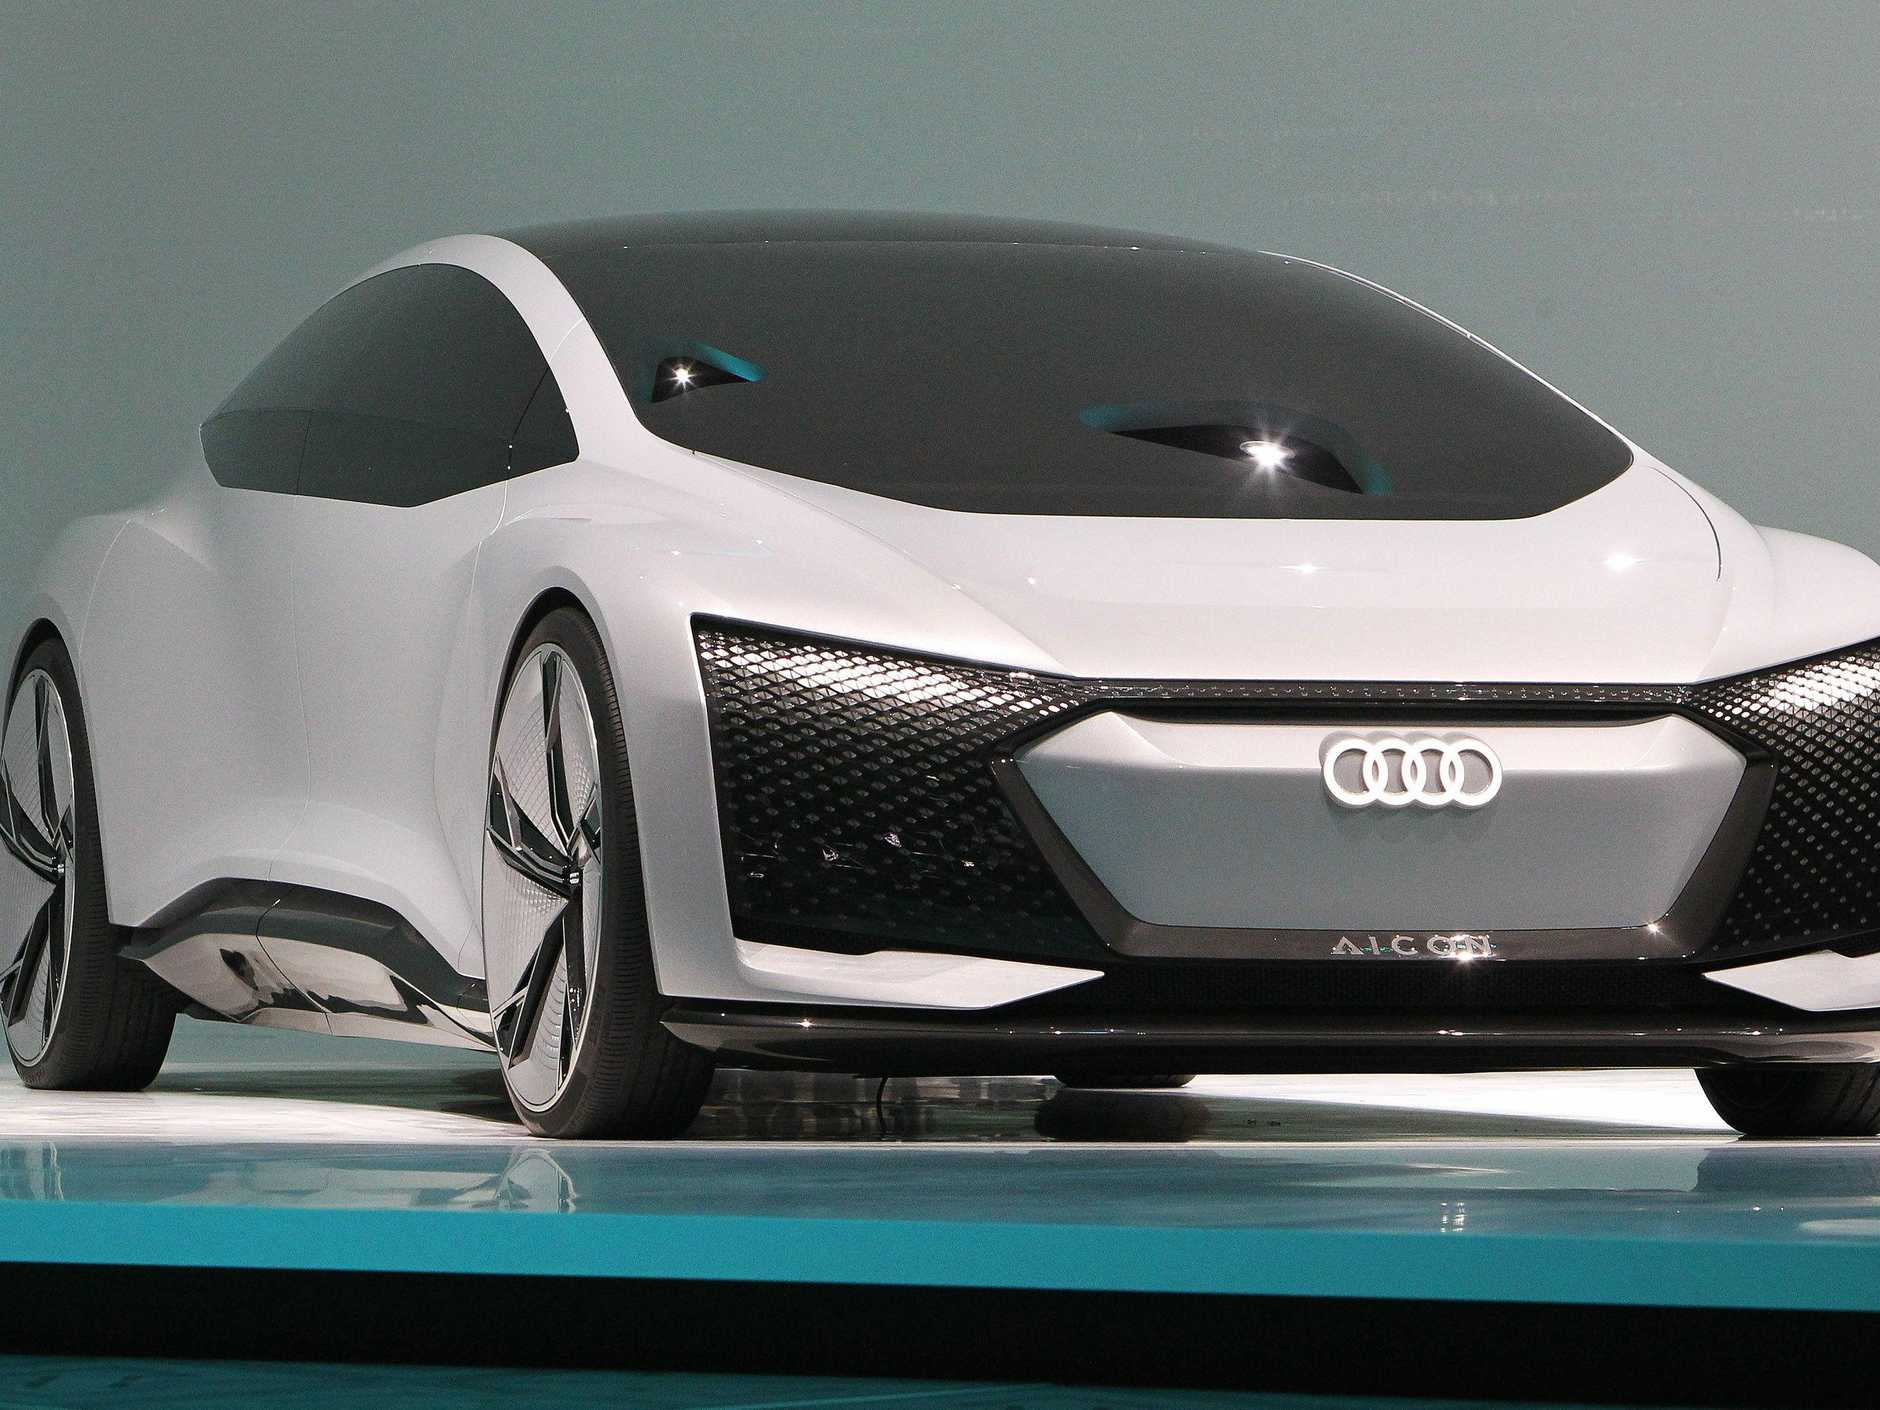 An Audi Aicon Concept car is presented at the Frankfurt Motor Show IAA in Frankfurt am Main, western Germany, on September 12, 2017.   According to organisers, around 1,000 exhibitors from 39 countries will showcase their products and services. This year's fair running from September 14 to 24, 2017 will focus on digitization, urban mobility and electric mobility. / AFP PHOTO / Daniel ROLAND